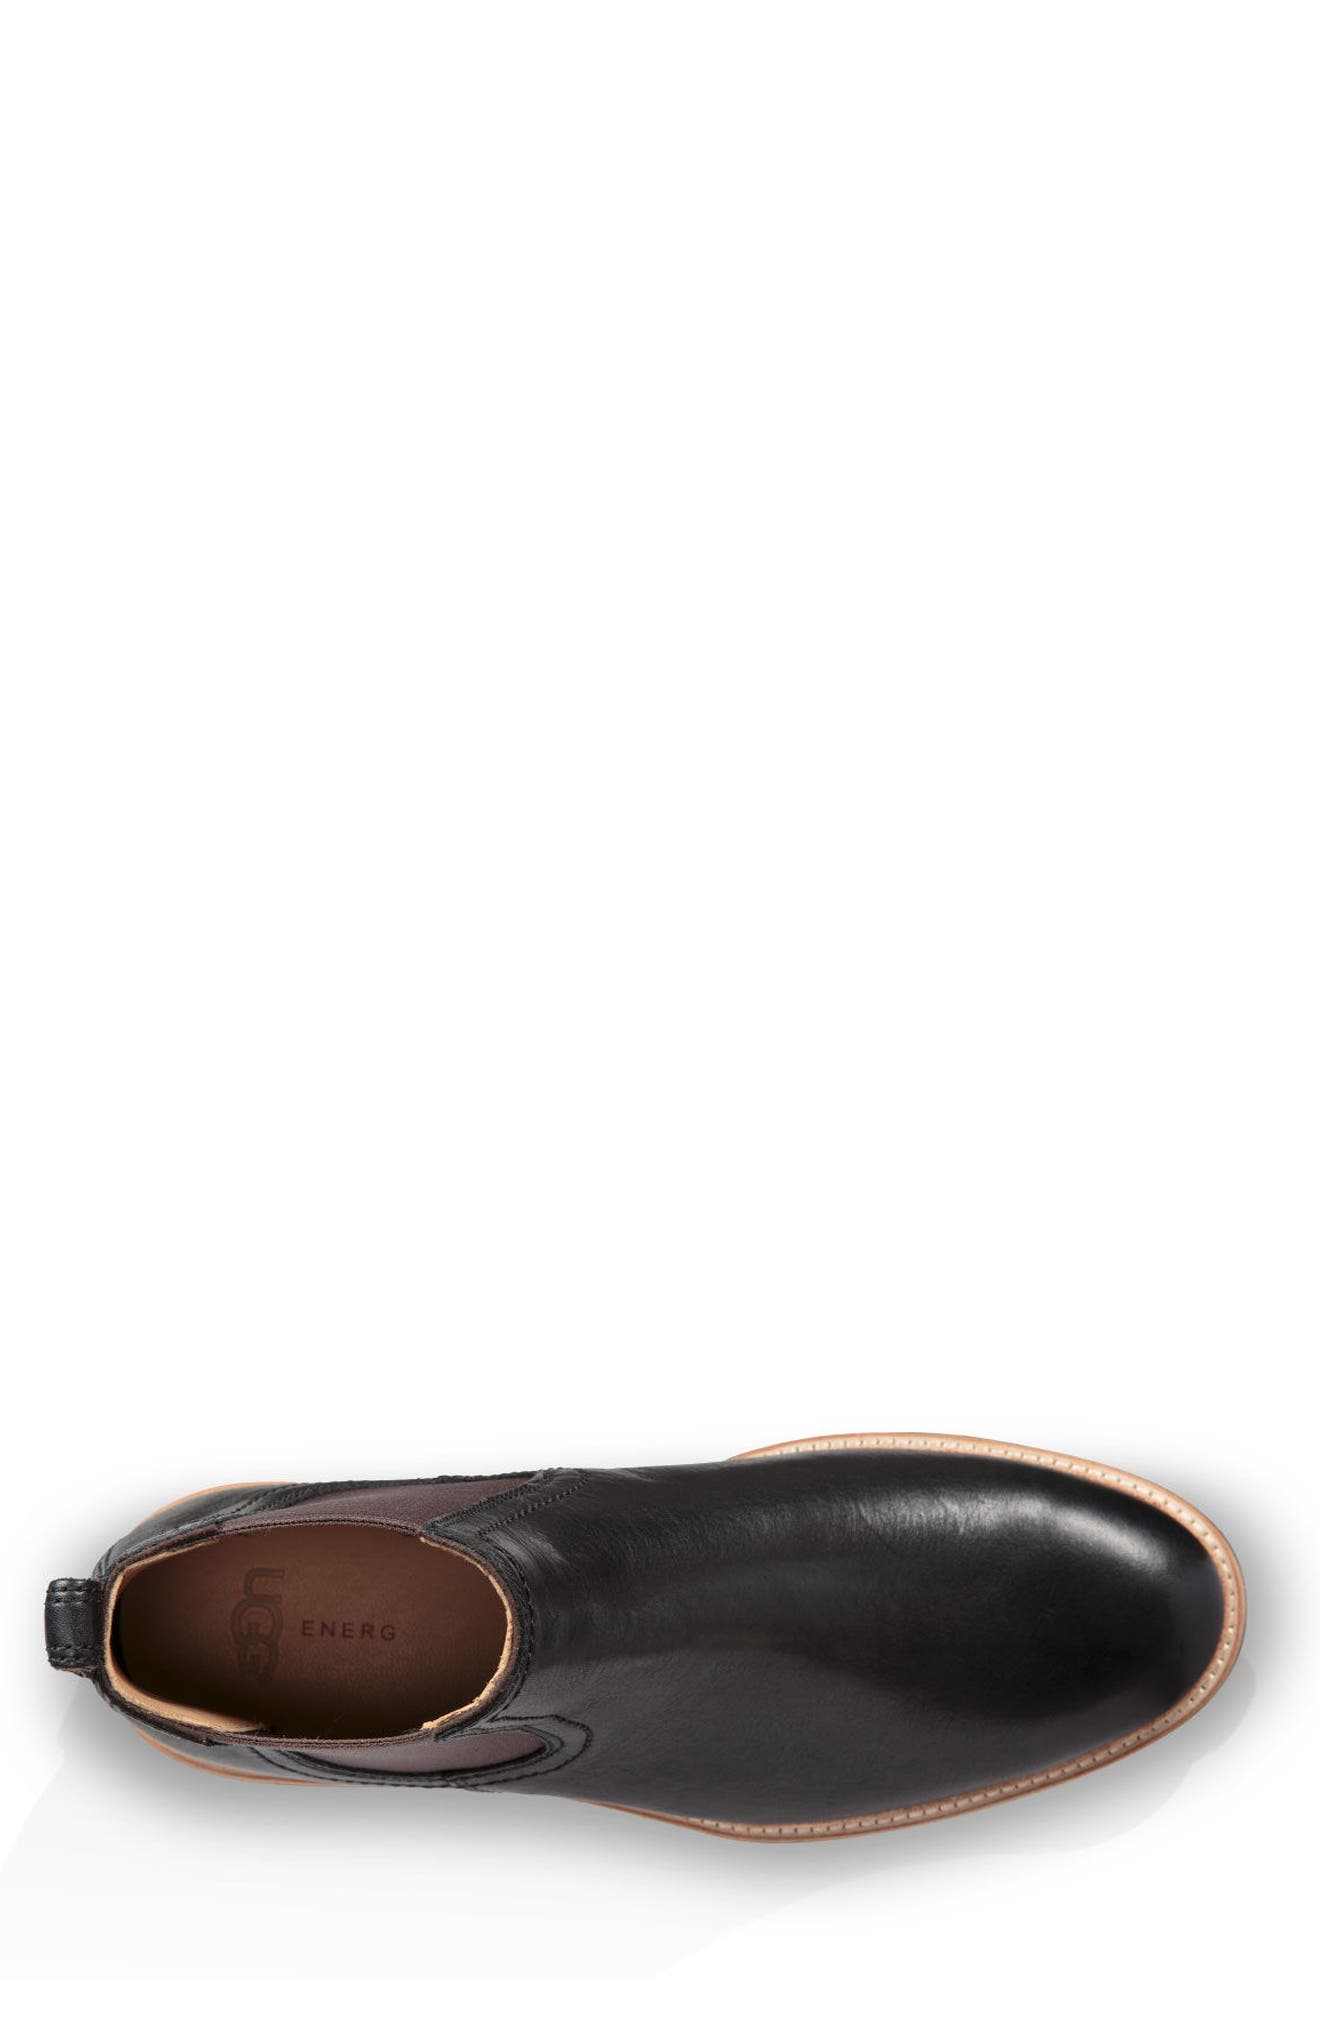 UGG<SUP>®</SUP>, Baldvin Chelsea Boot, Alternate thumbnail 4, color, BLACK LEATHER/SUEDE